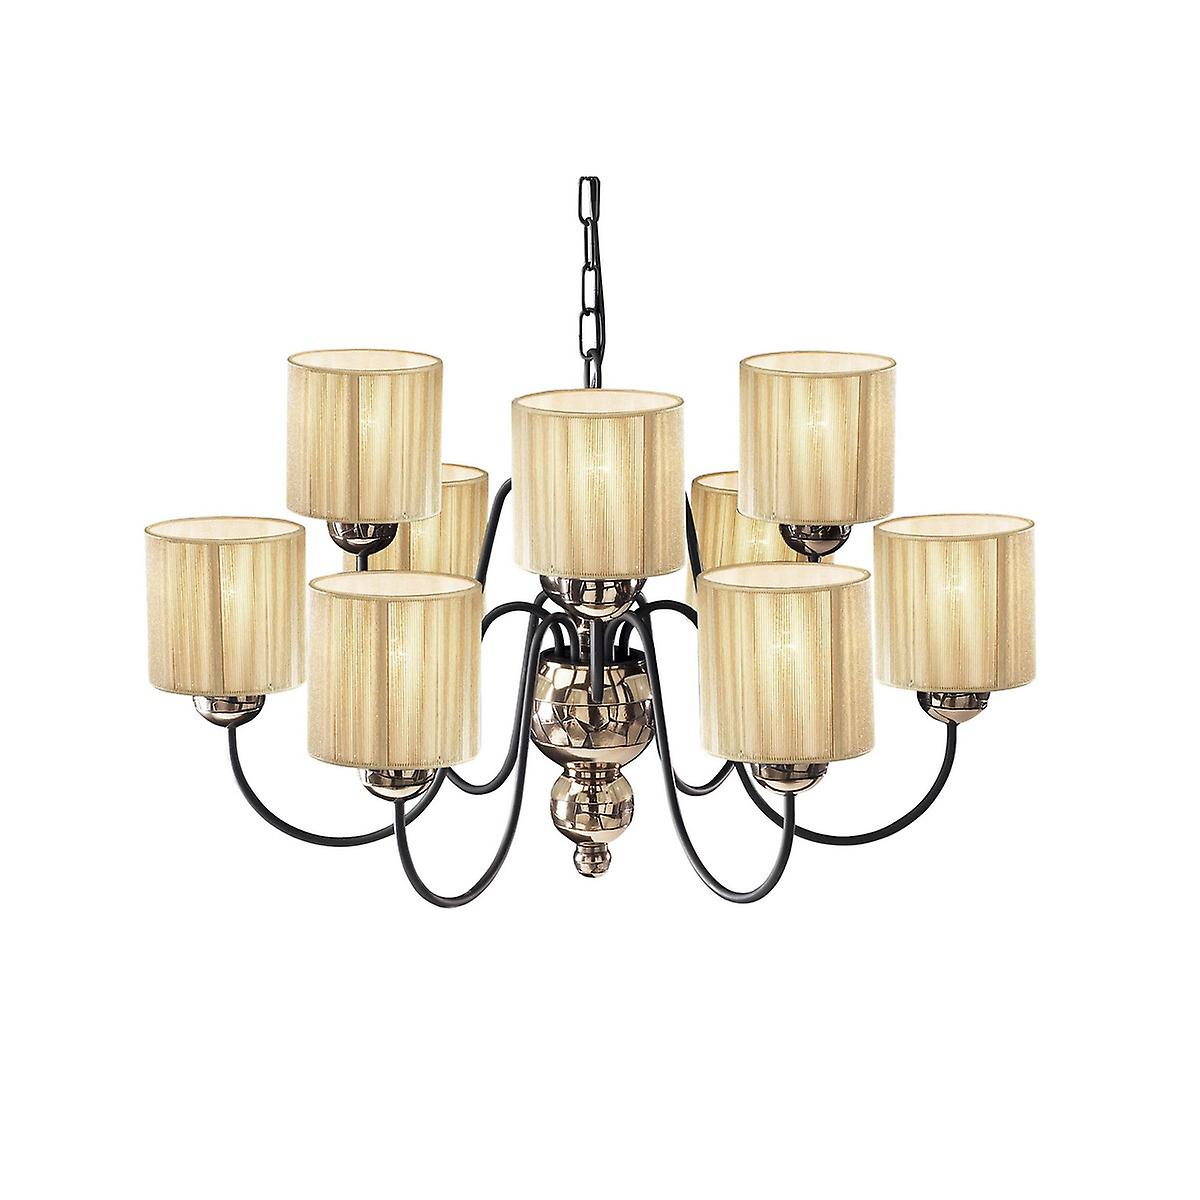 David Hunt GAR1364 Garbo 9 Light Pendant In A Bronze Finish With Gold String Shades